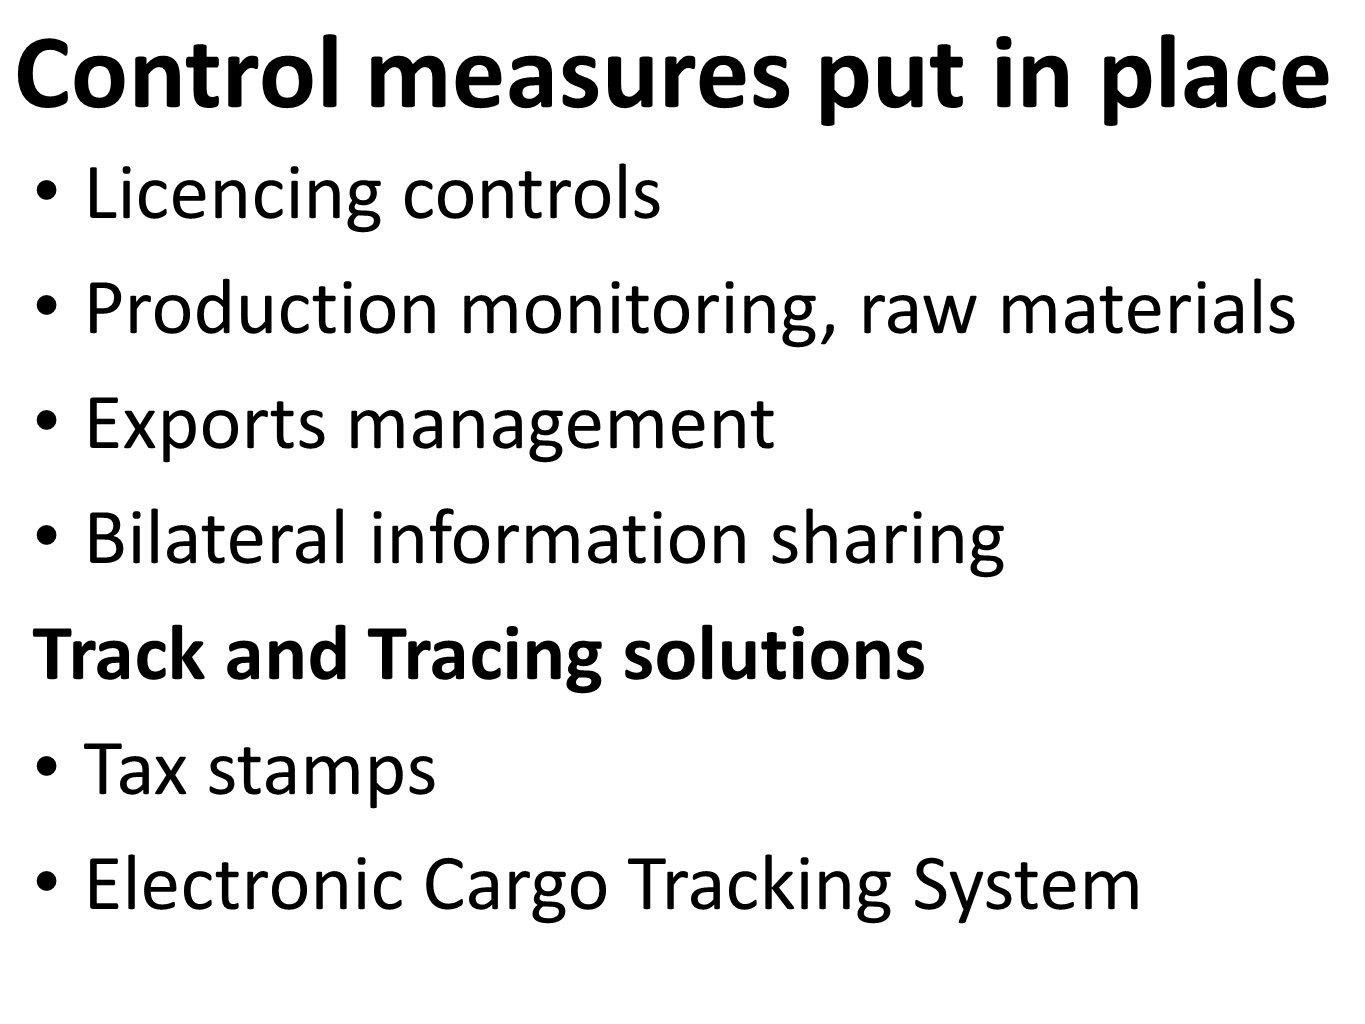 Control measures put in place